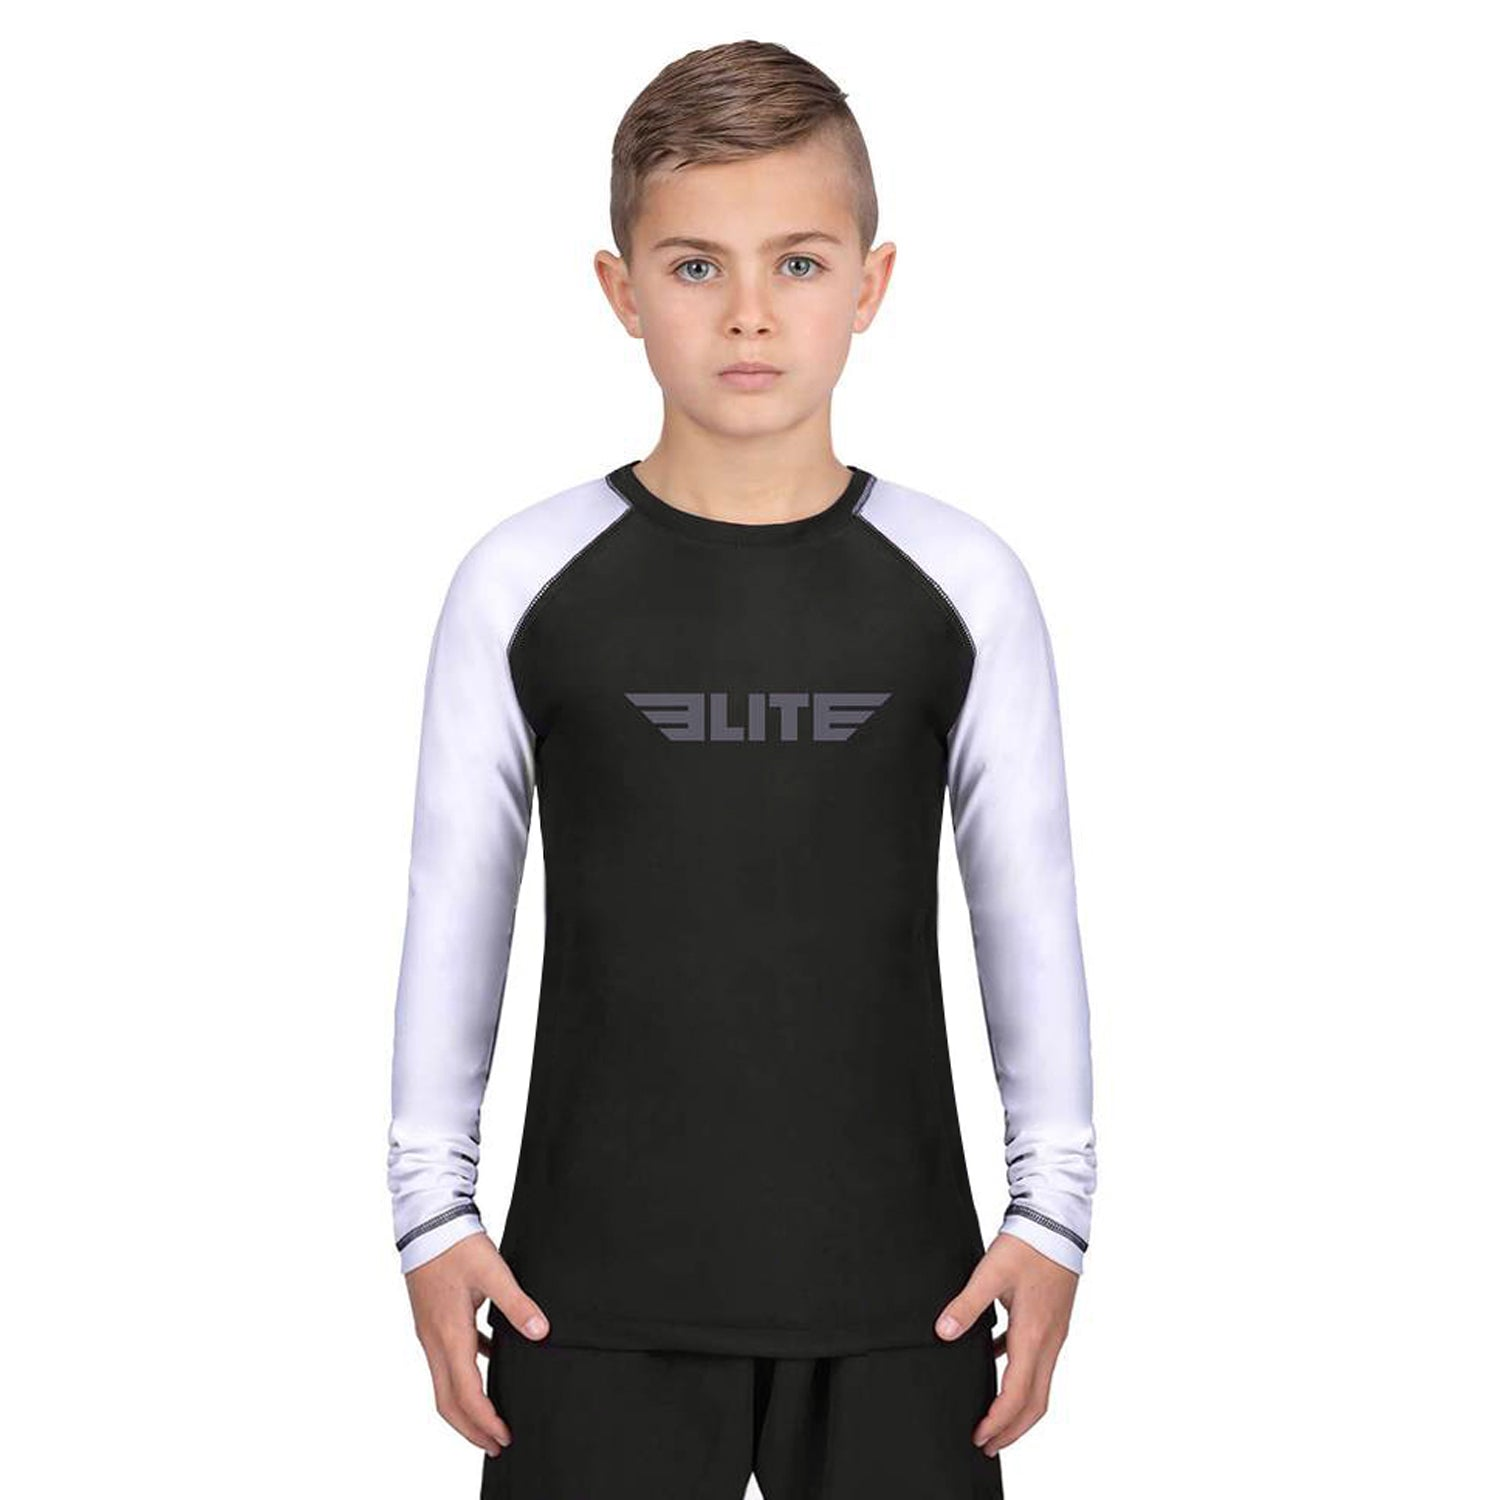 Elite Sports Standard White/Black Long Sleeve Kids MMA Rash Guard